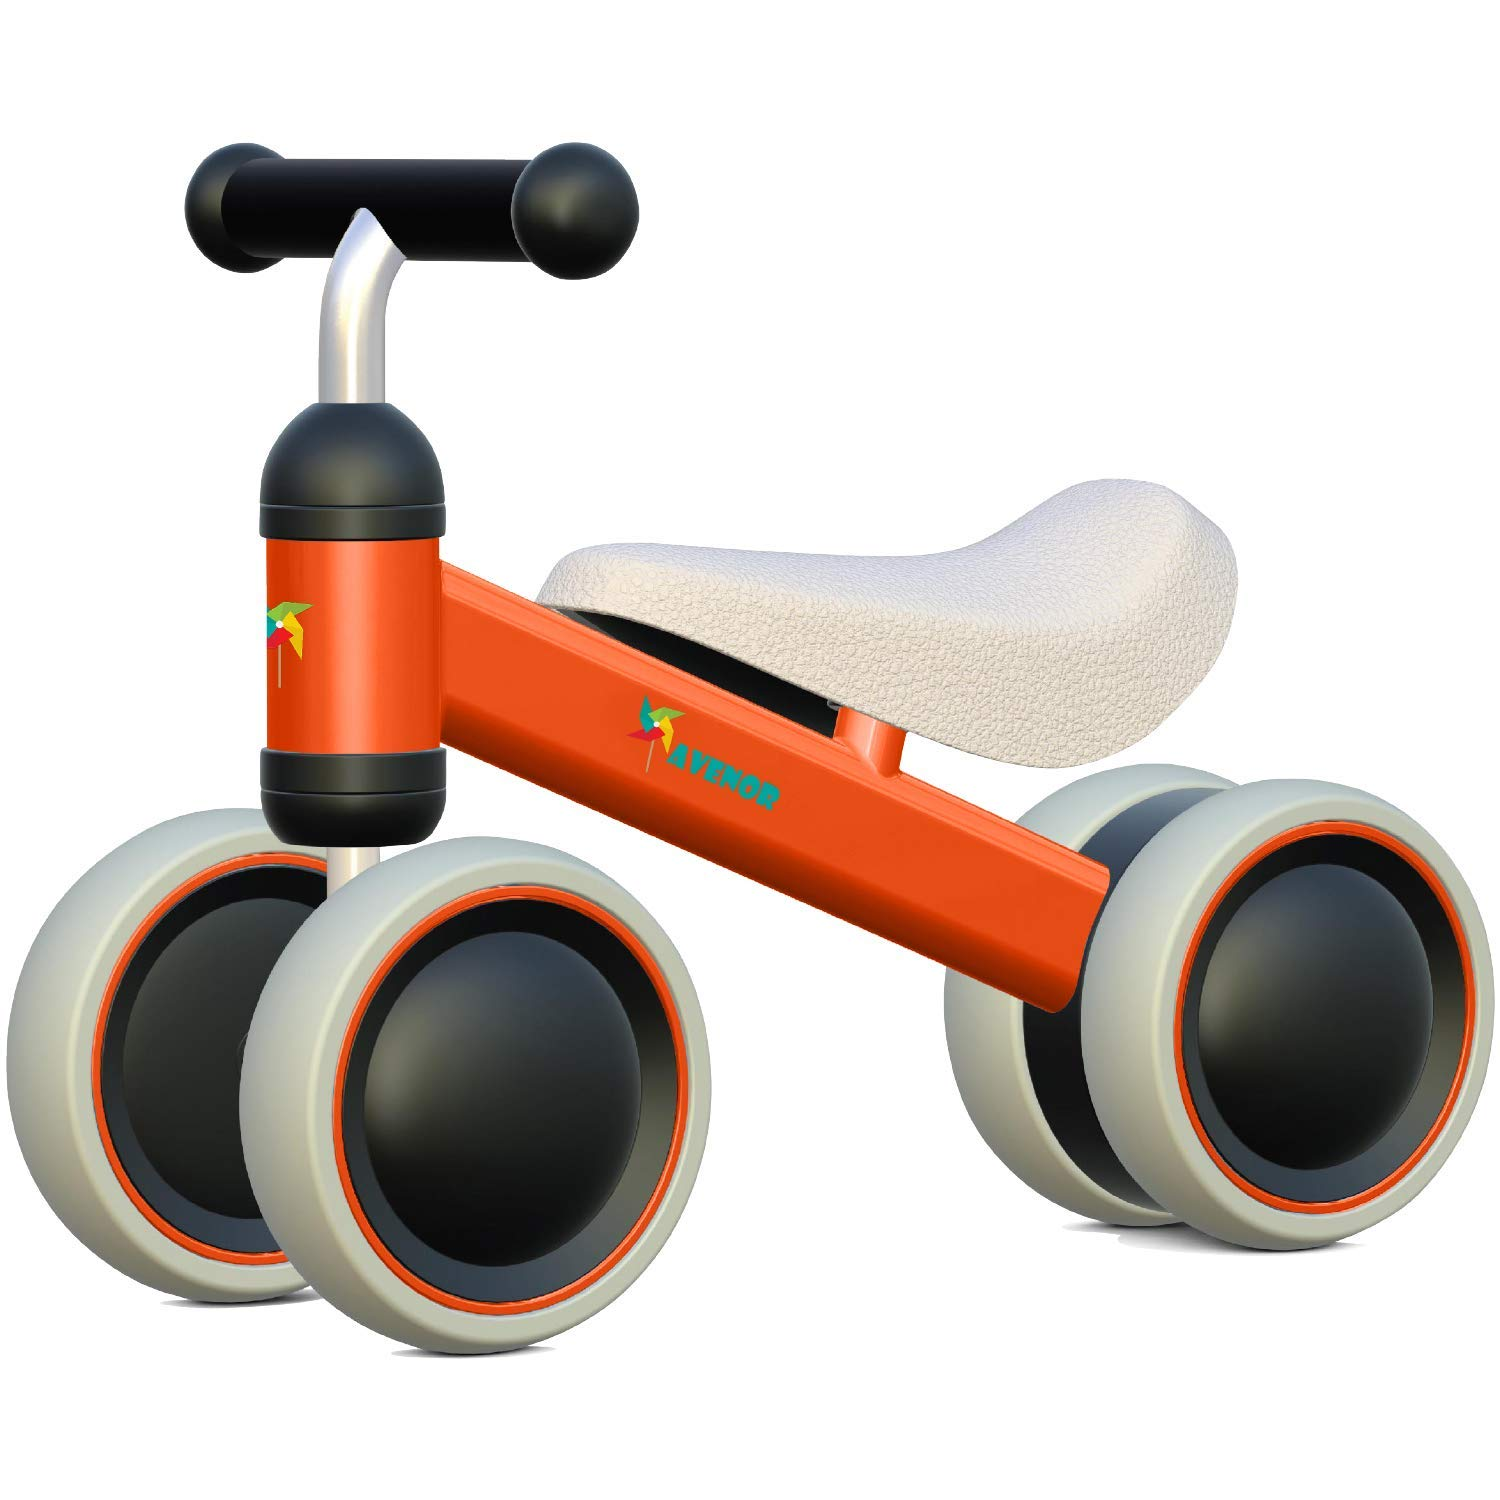 Avenor Baby Balance Bike - Baby Bicycle for 6-24 Months, Sturdy Balance Bike for 1 Year Old, Perfect as First Bike or Birthday Gift, Safe Riding Toys for 1 Year Old Boy Girl Ideal Baby Bike (Orange)